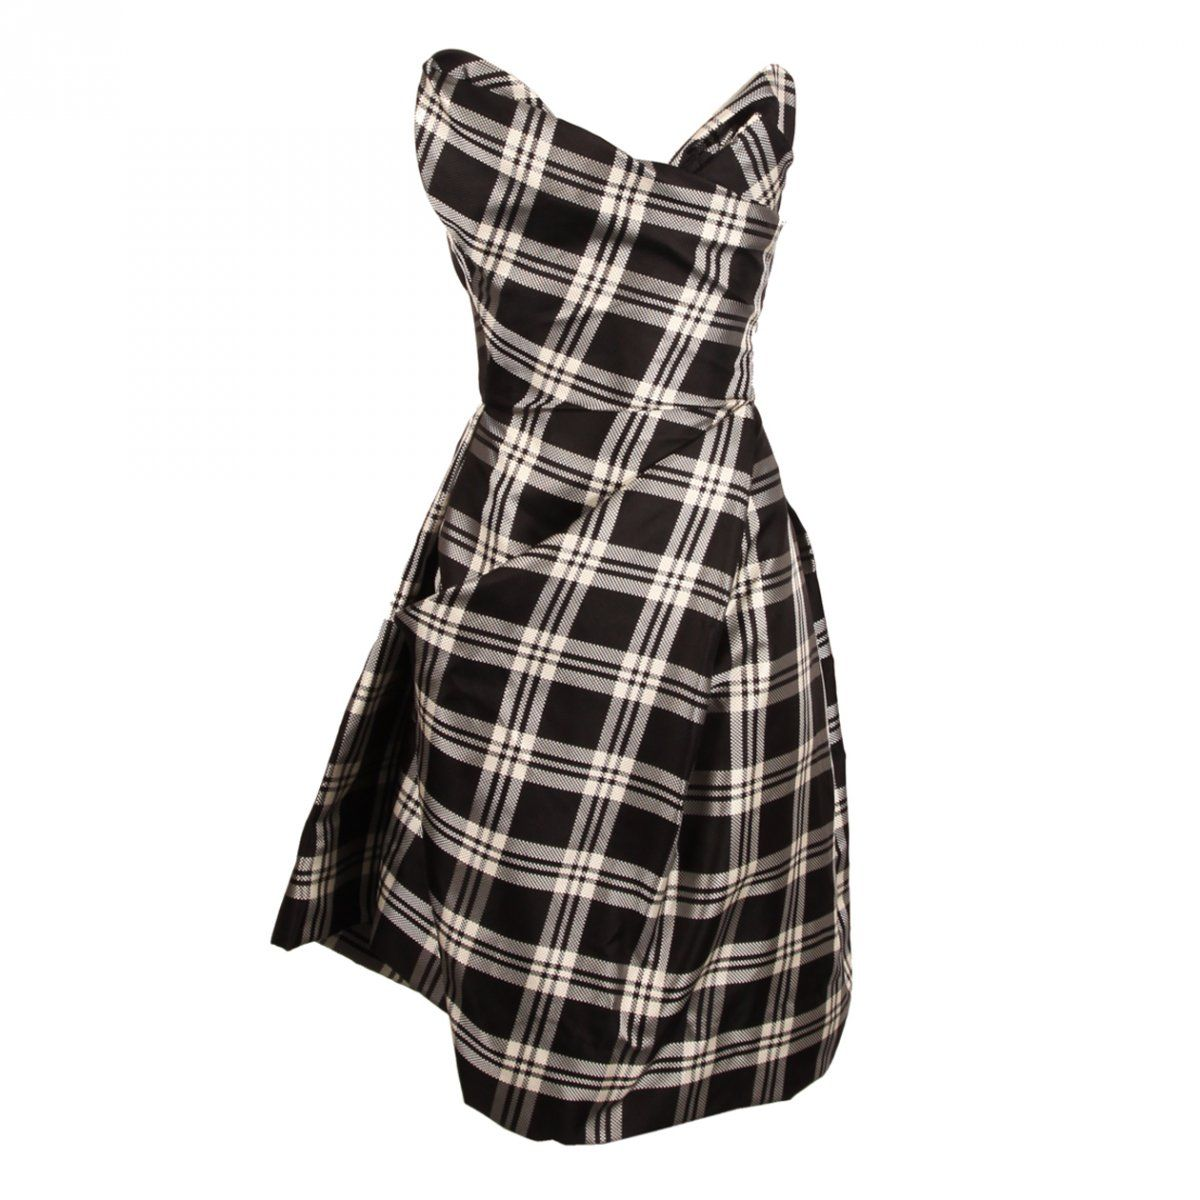 Vivienne Westwood - one day I will own a Vivienne Westwood dress